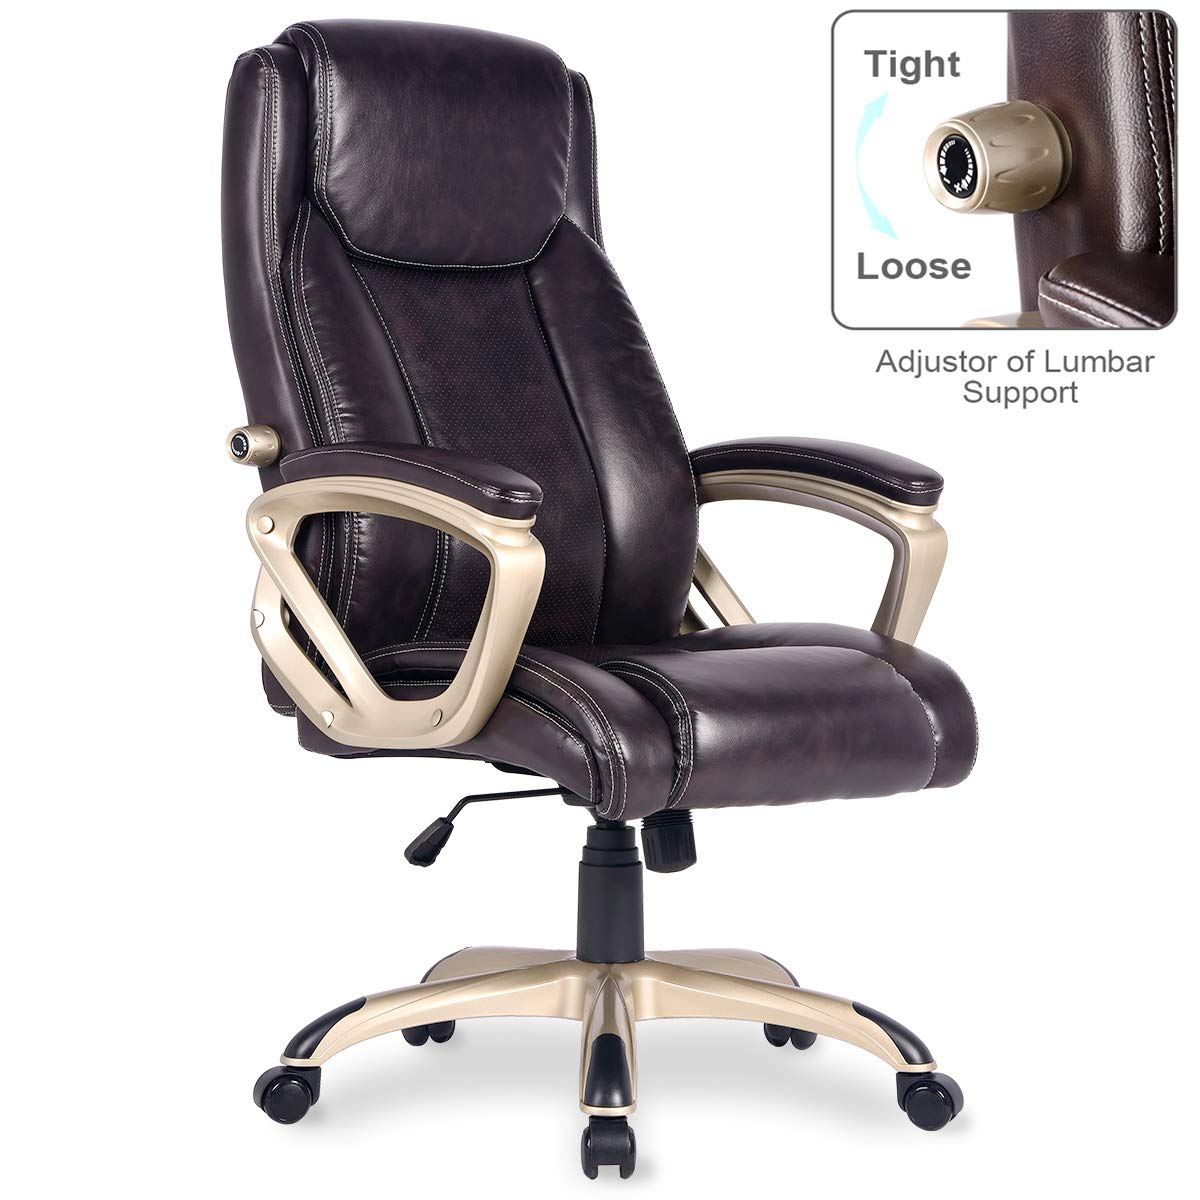 PU Leather Executive Office Chair Desk Task Computer Chair Swivel High Back Chair with Ergonomic Adjustable Lumbar Support Brown